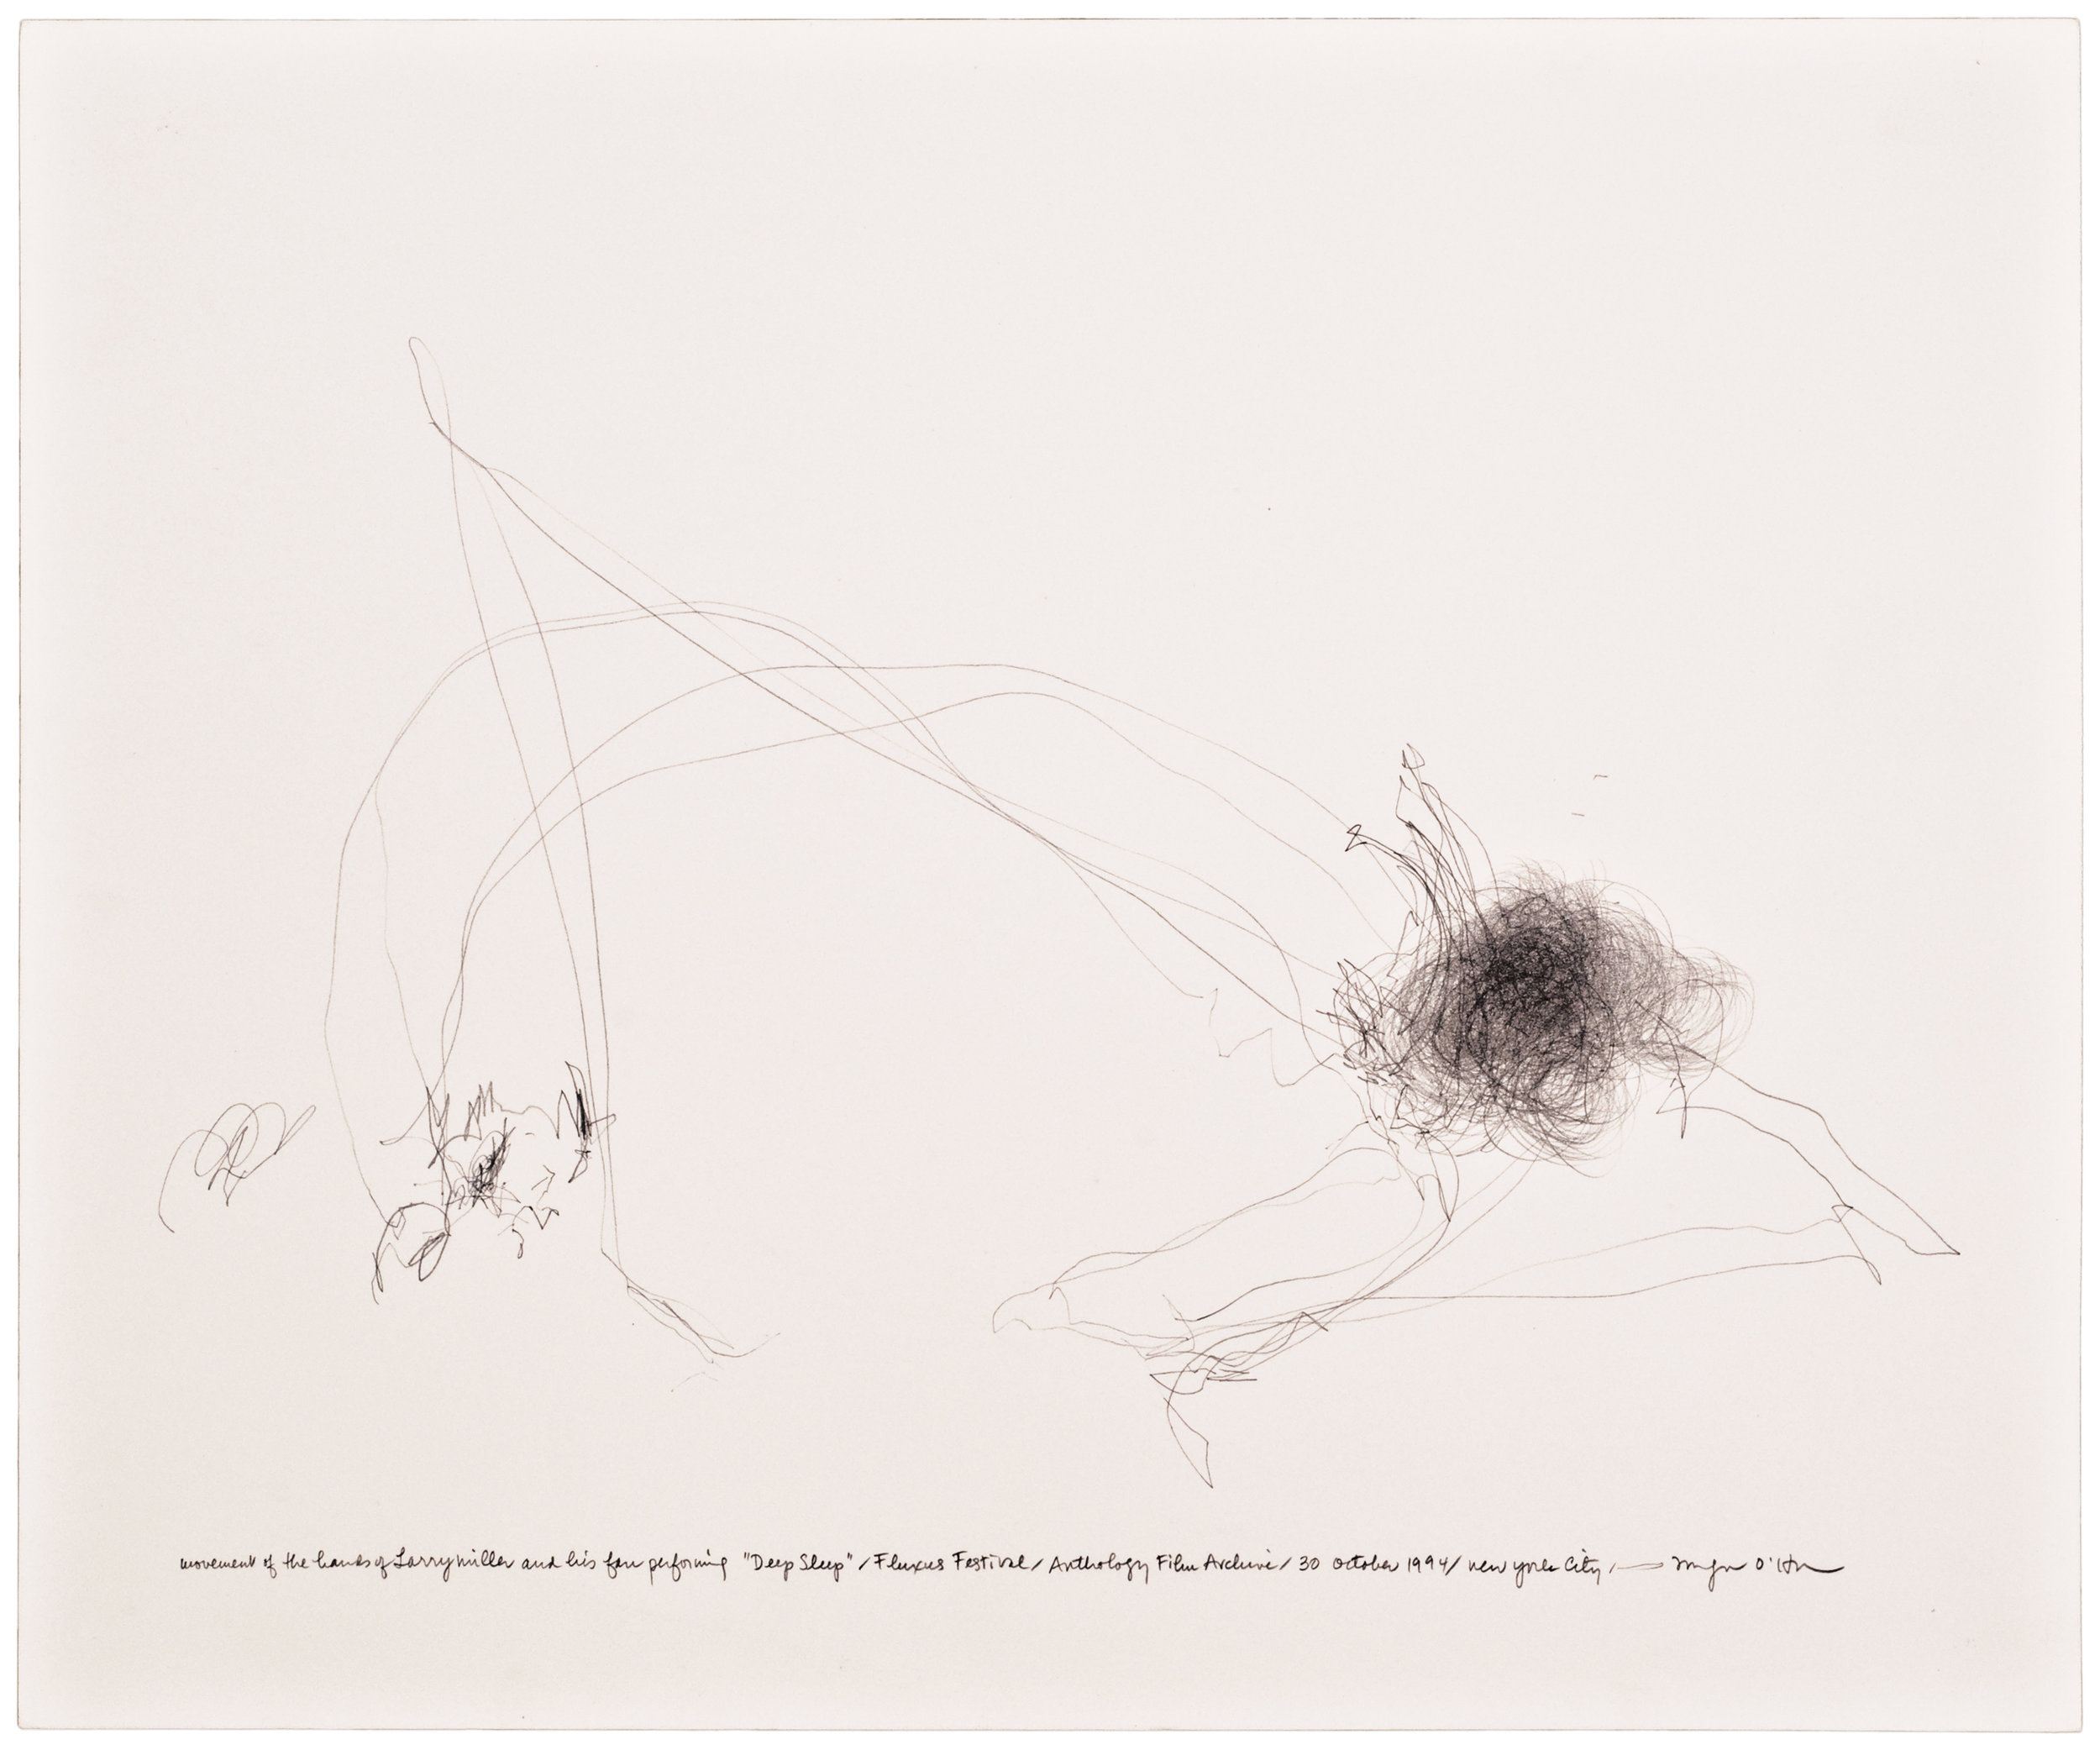 Morgan O'Hara,  LIVE TRANSMISSION: movement of the hands of LARRY MILLER and his fan performing Deep Sleep / Fluxus Festival / Anthology Film Archives / 30 October 1994 / New York City , 14 x 17 in., Graphite on paper, 1999